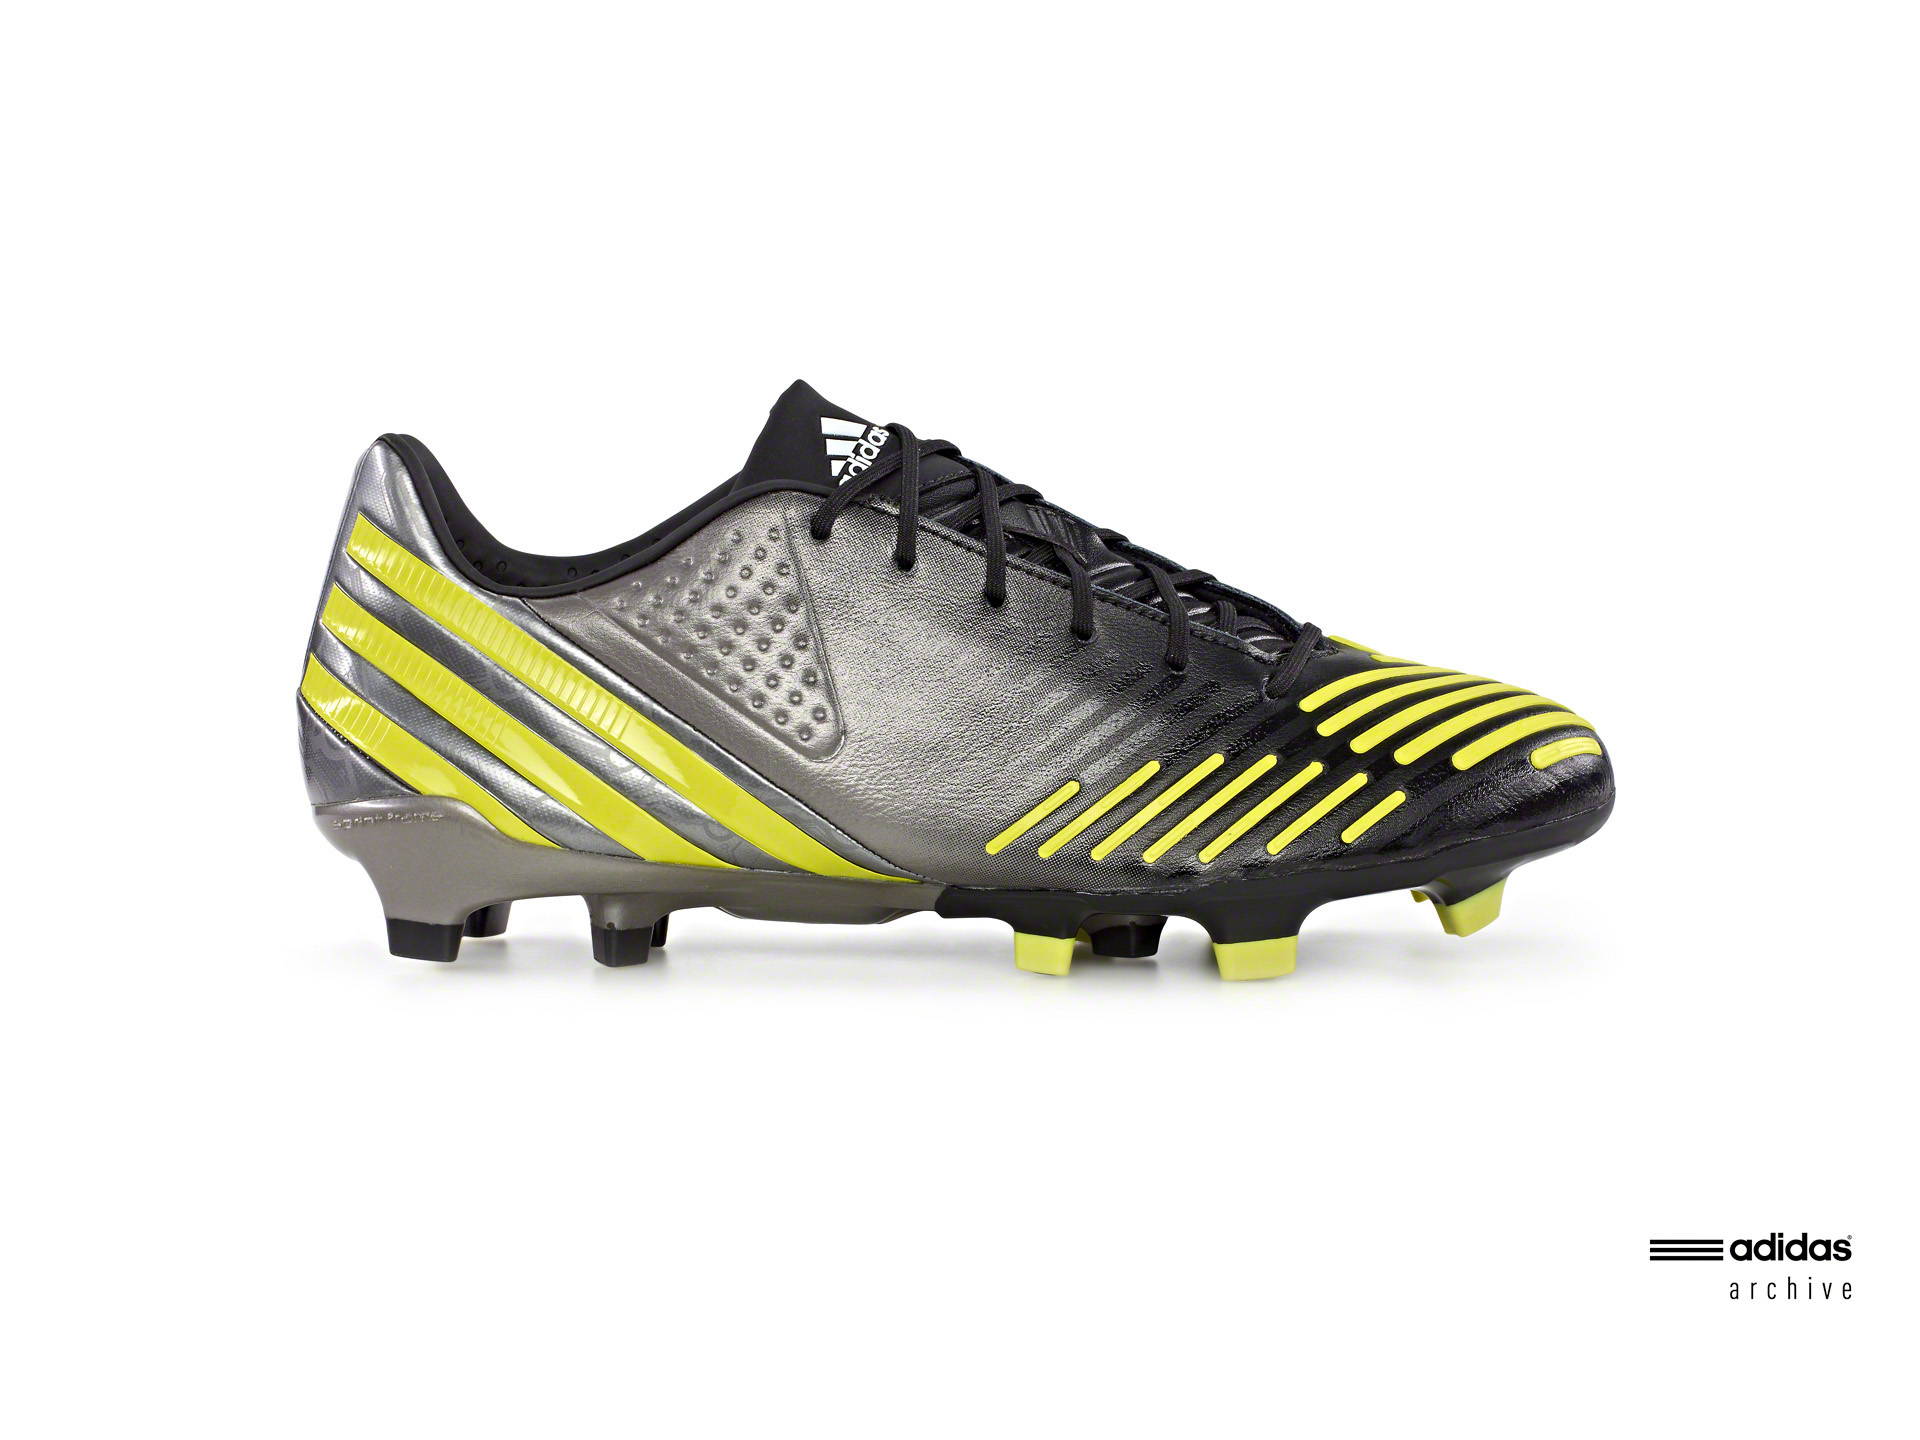 new arrivals 7640f c0d60 Adidas Predator Lethal Zones